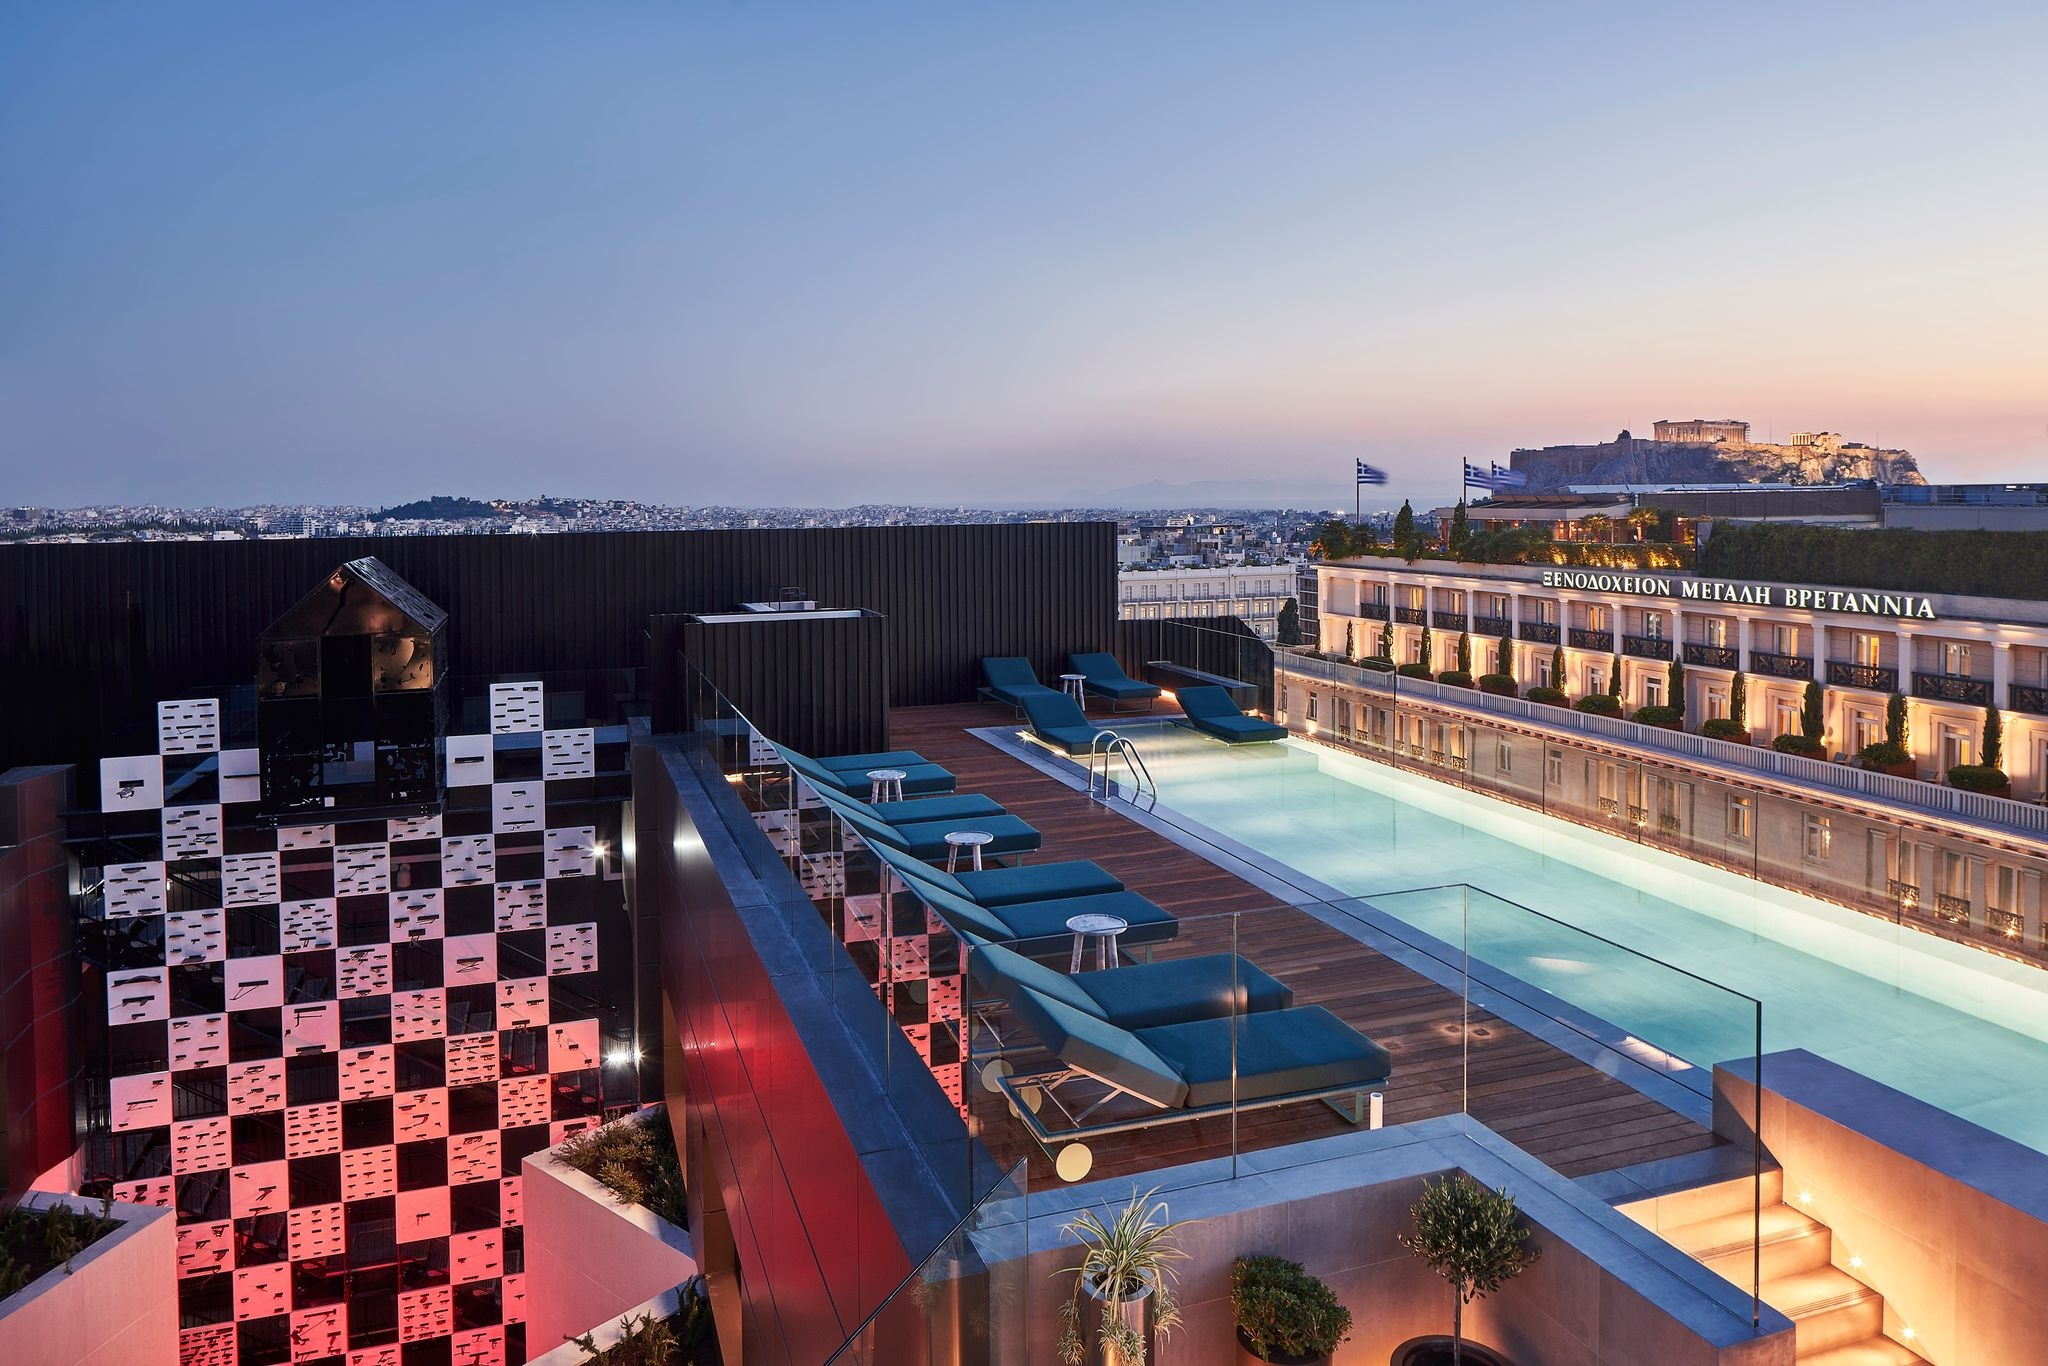 Athens Capital Hotel - MGALLERY Collection. A new era of hospitality in the heart of Athens